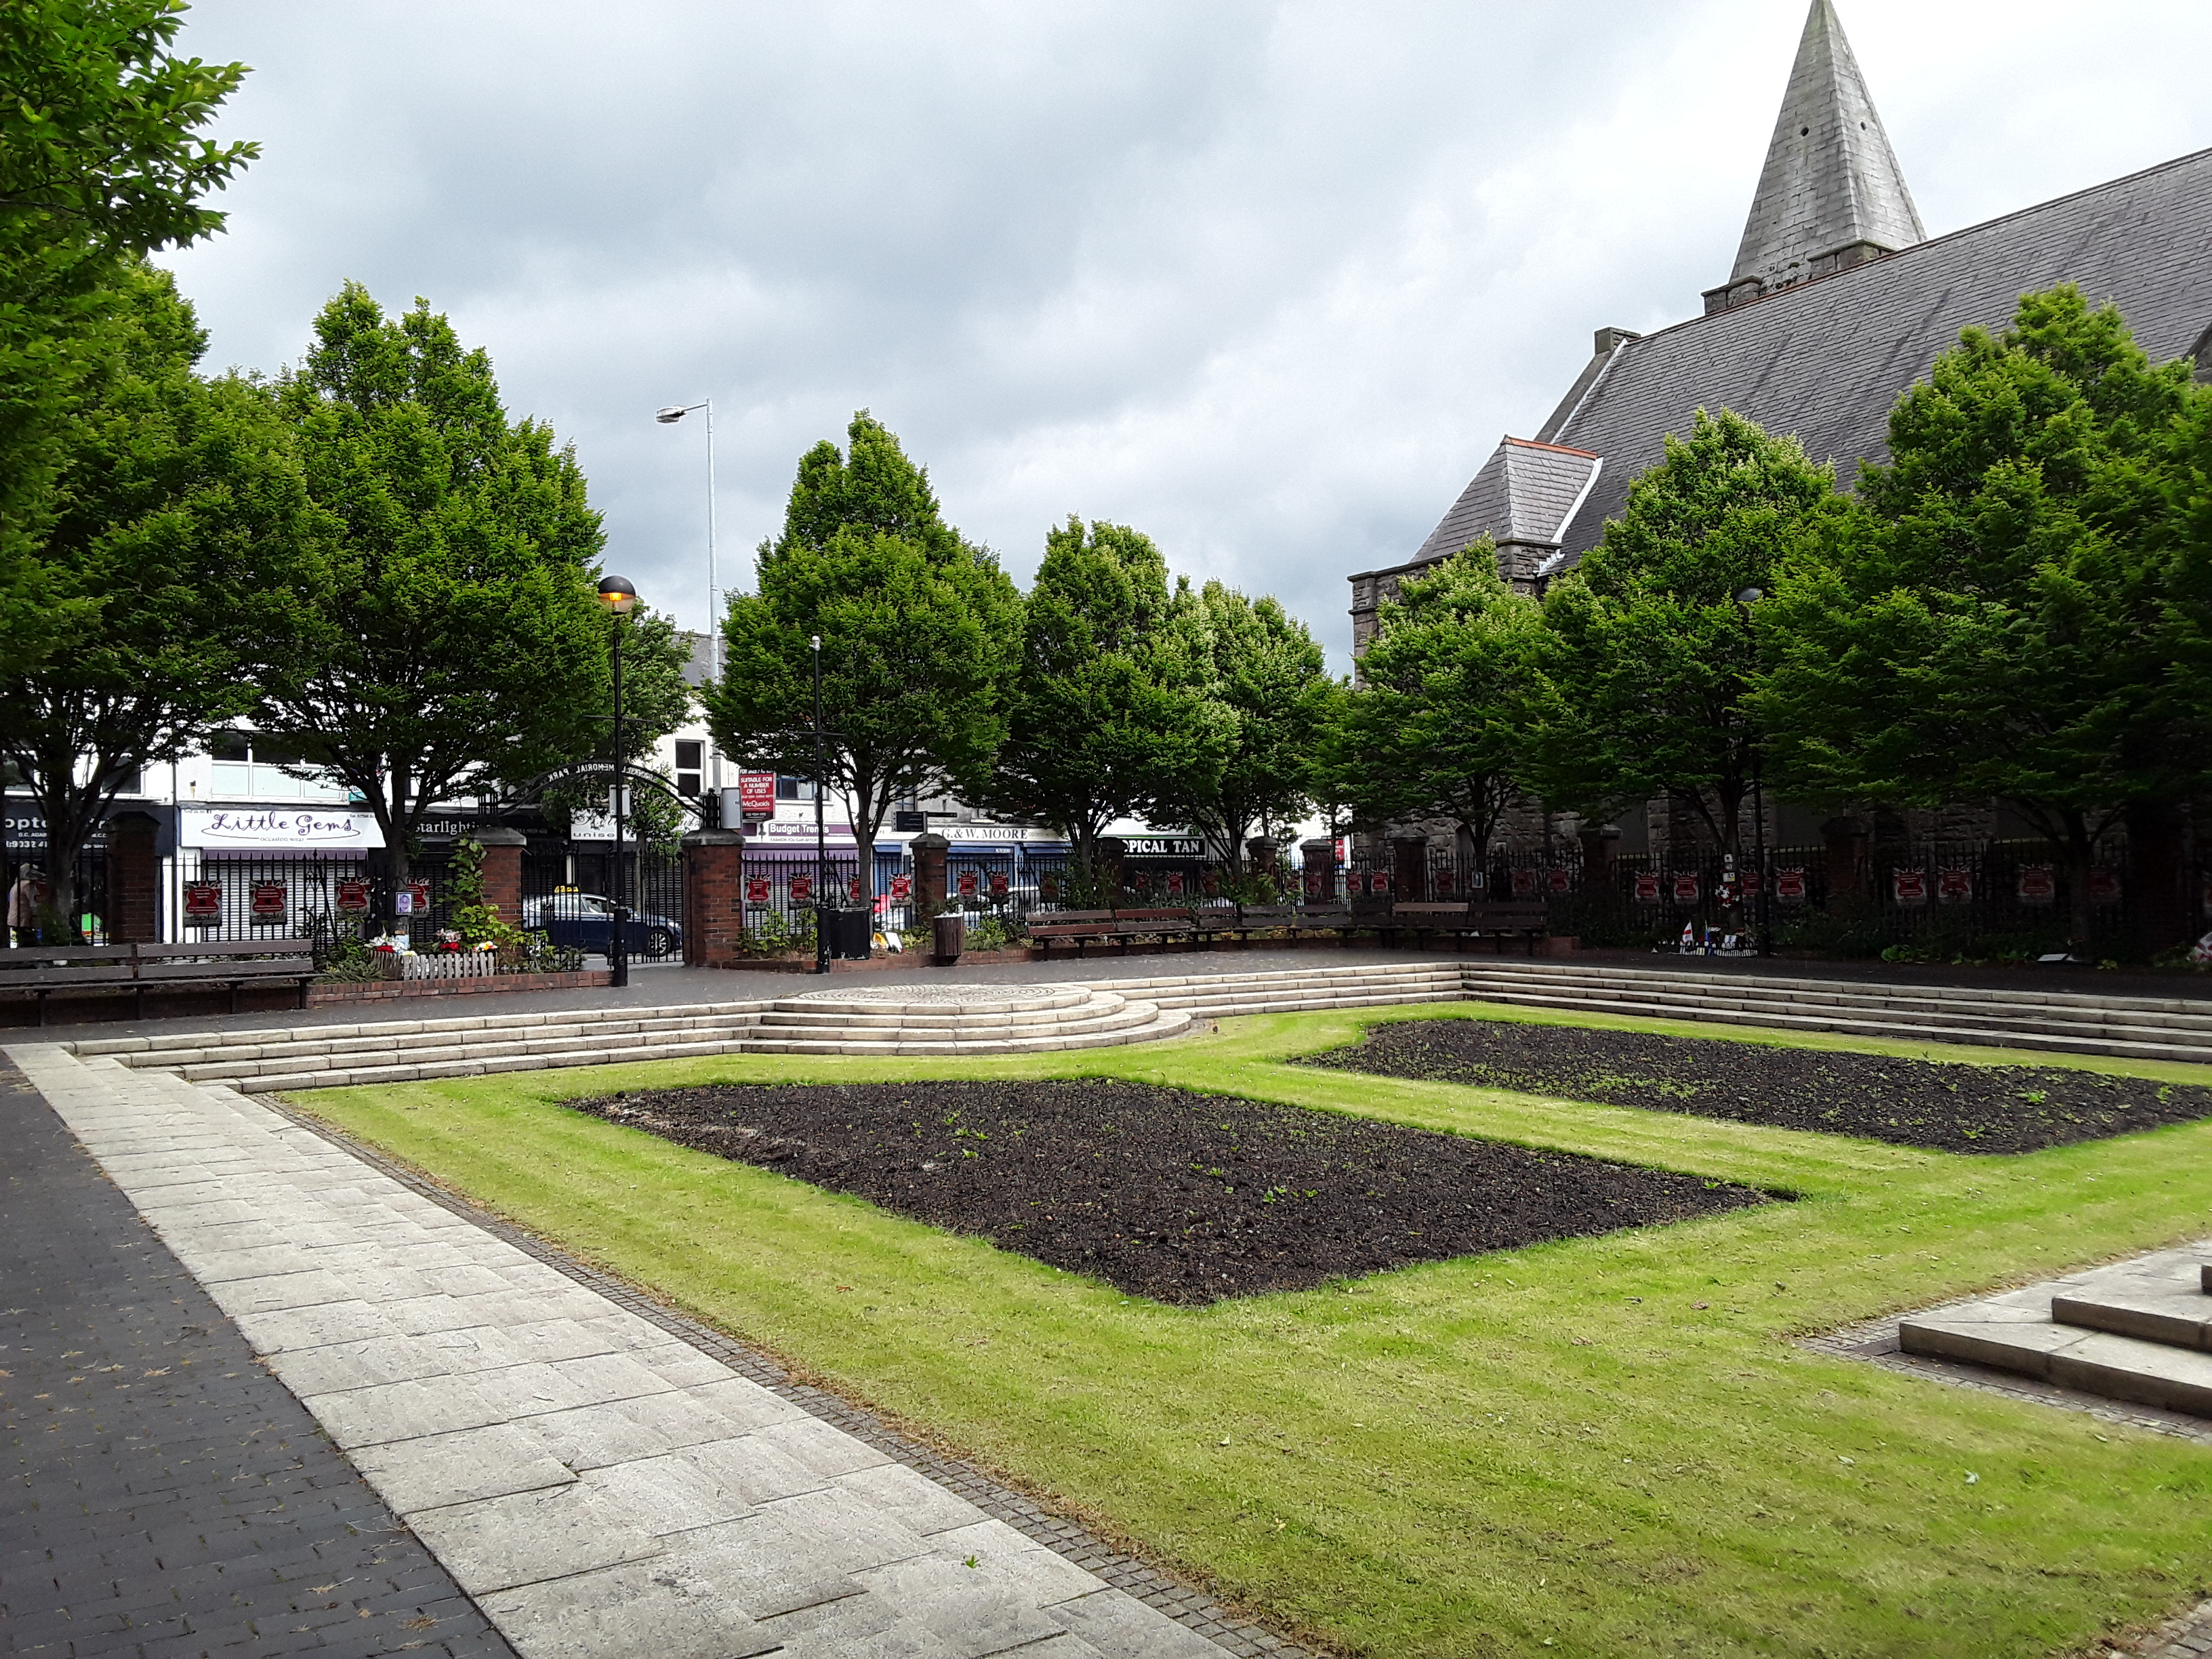 20170612 124842 - Shankill Road Memorial Gardens